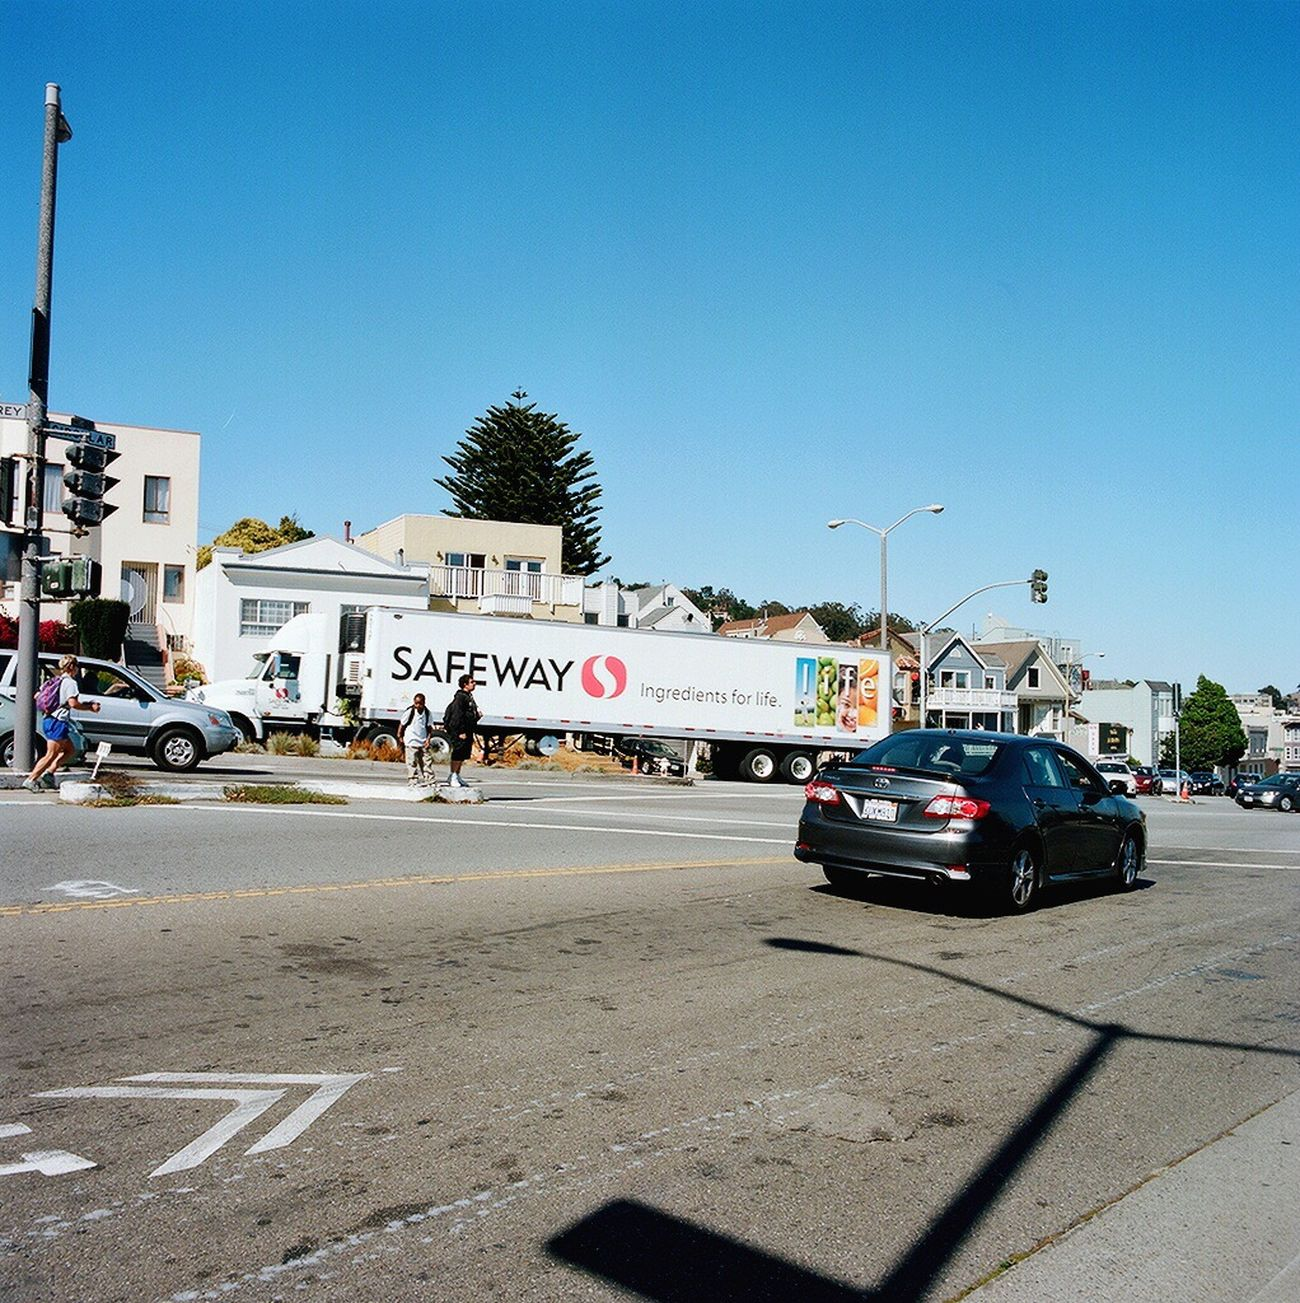 Clear Sky Car Land Vehicle Koduckgirl Hasselblad Real Film Glen Park